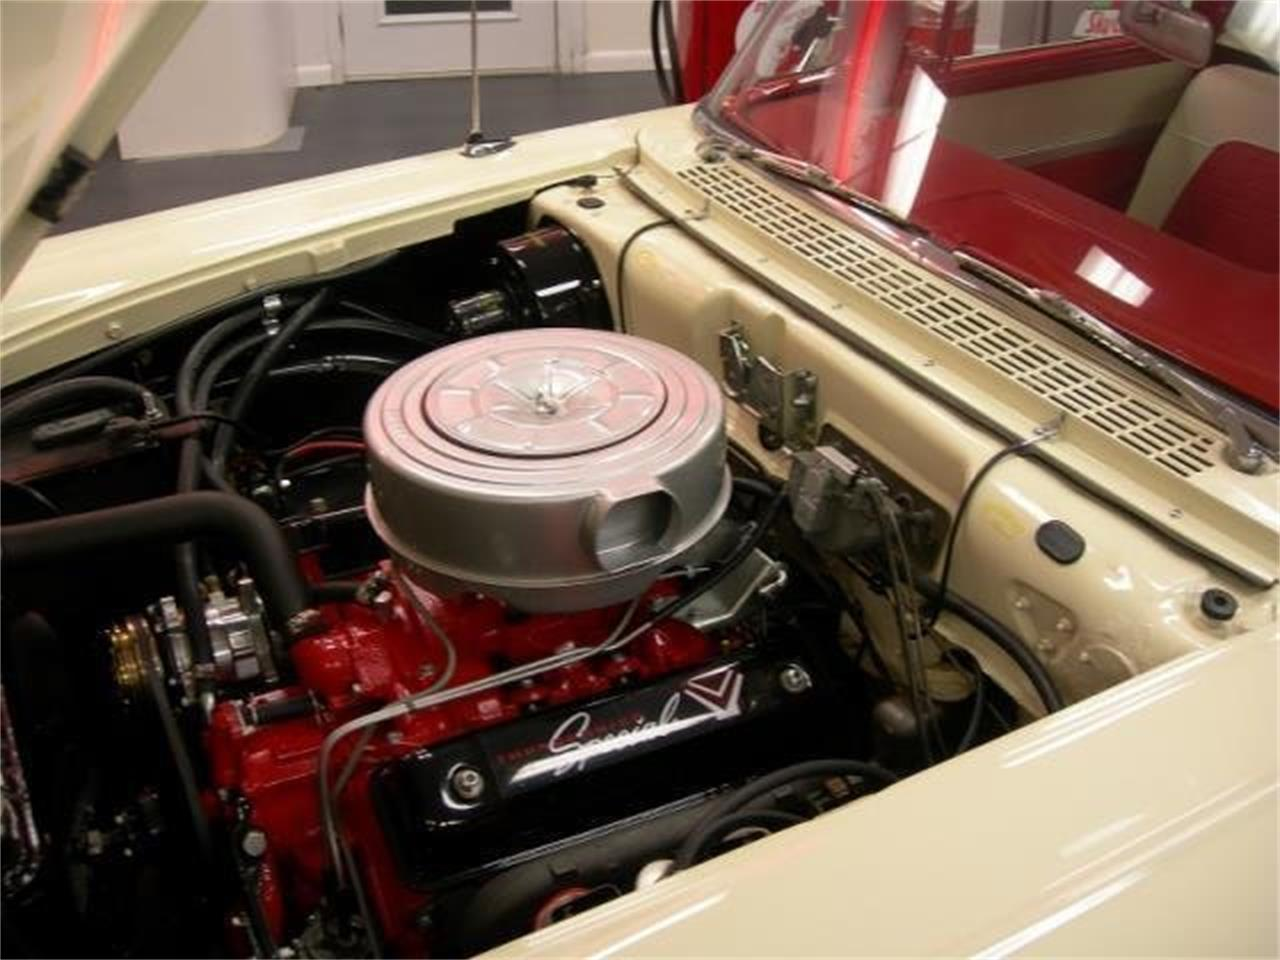 Large Picture of Classic '57 Ford Ranchero located in Dothan Alabama - $49,995.00 - MXBH